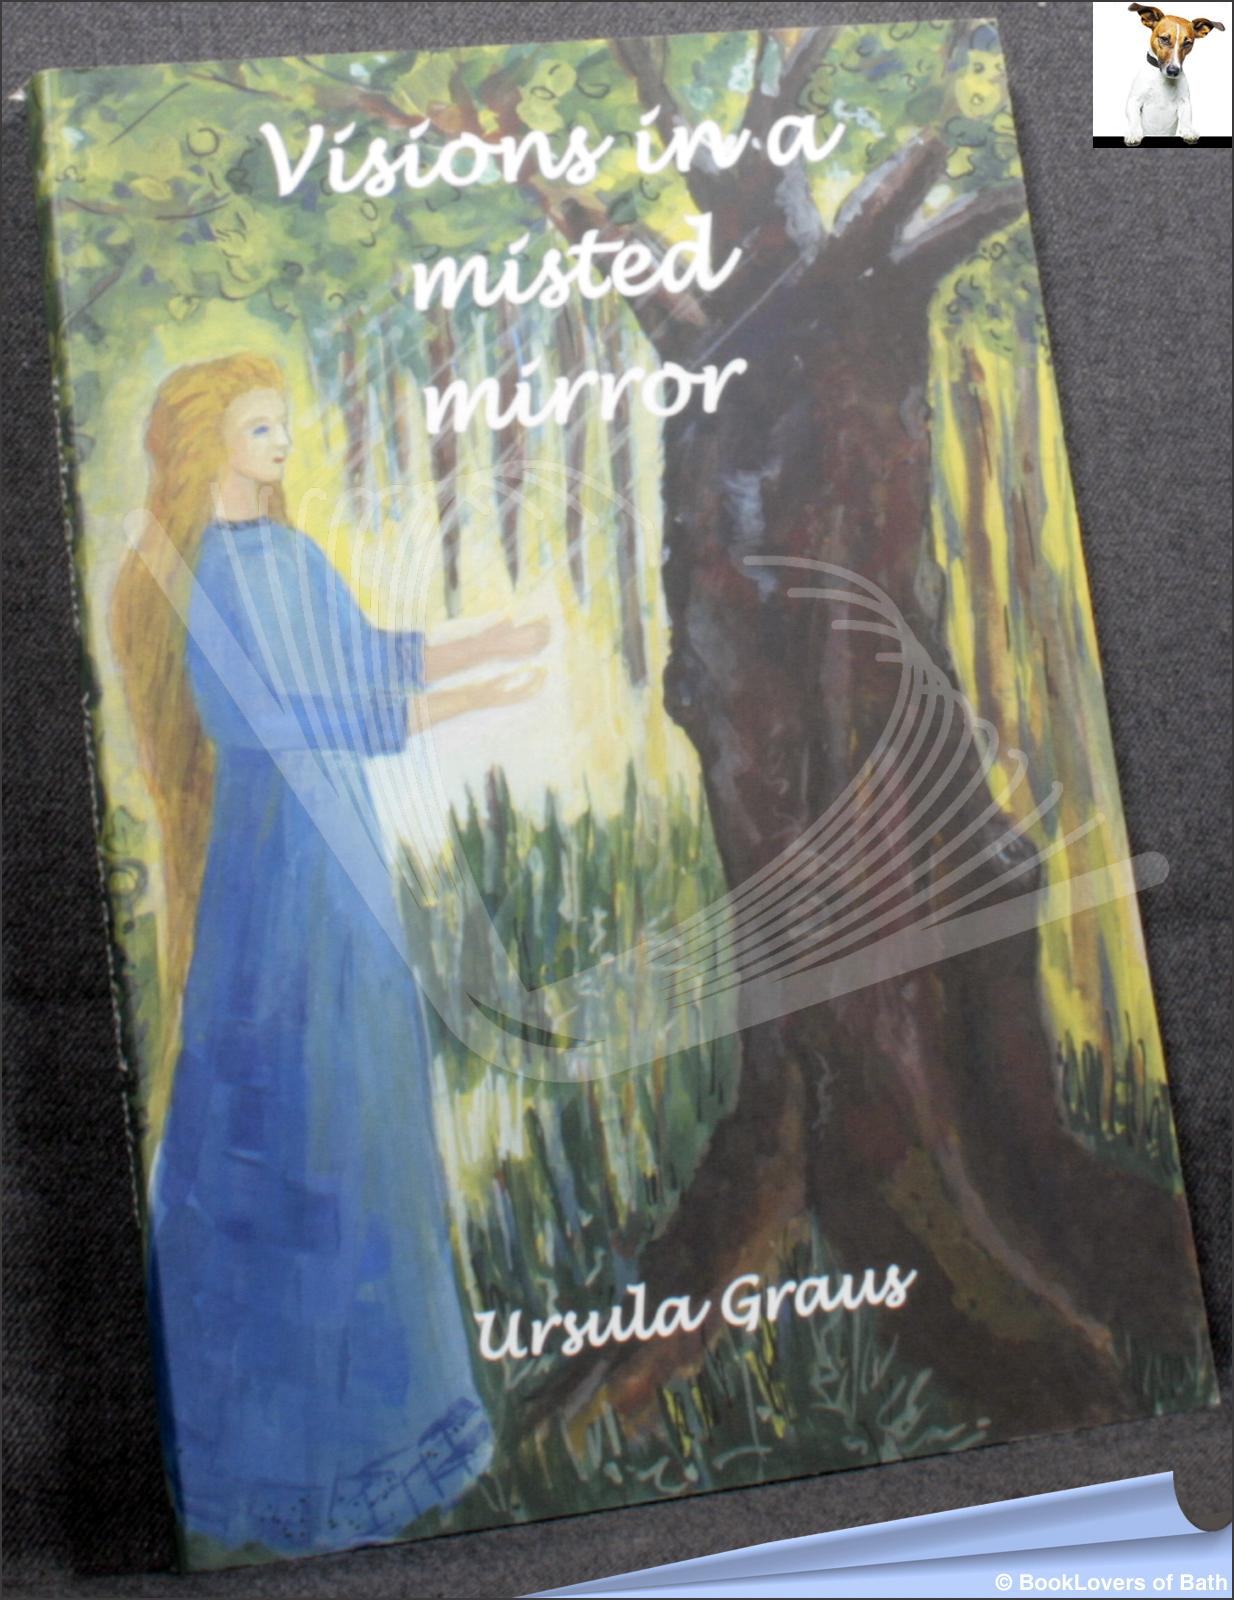 Visions in a Misted Mirror - Ursula Graus